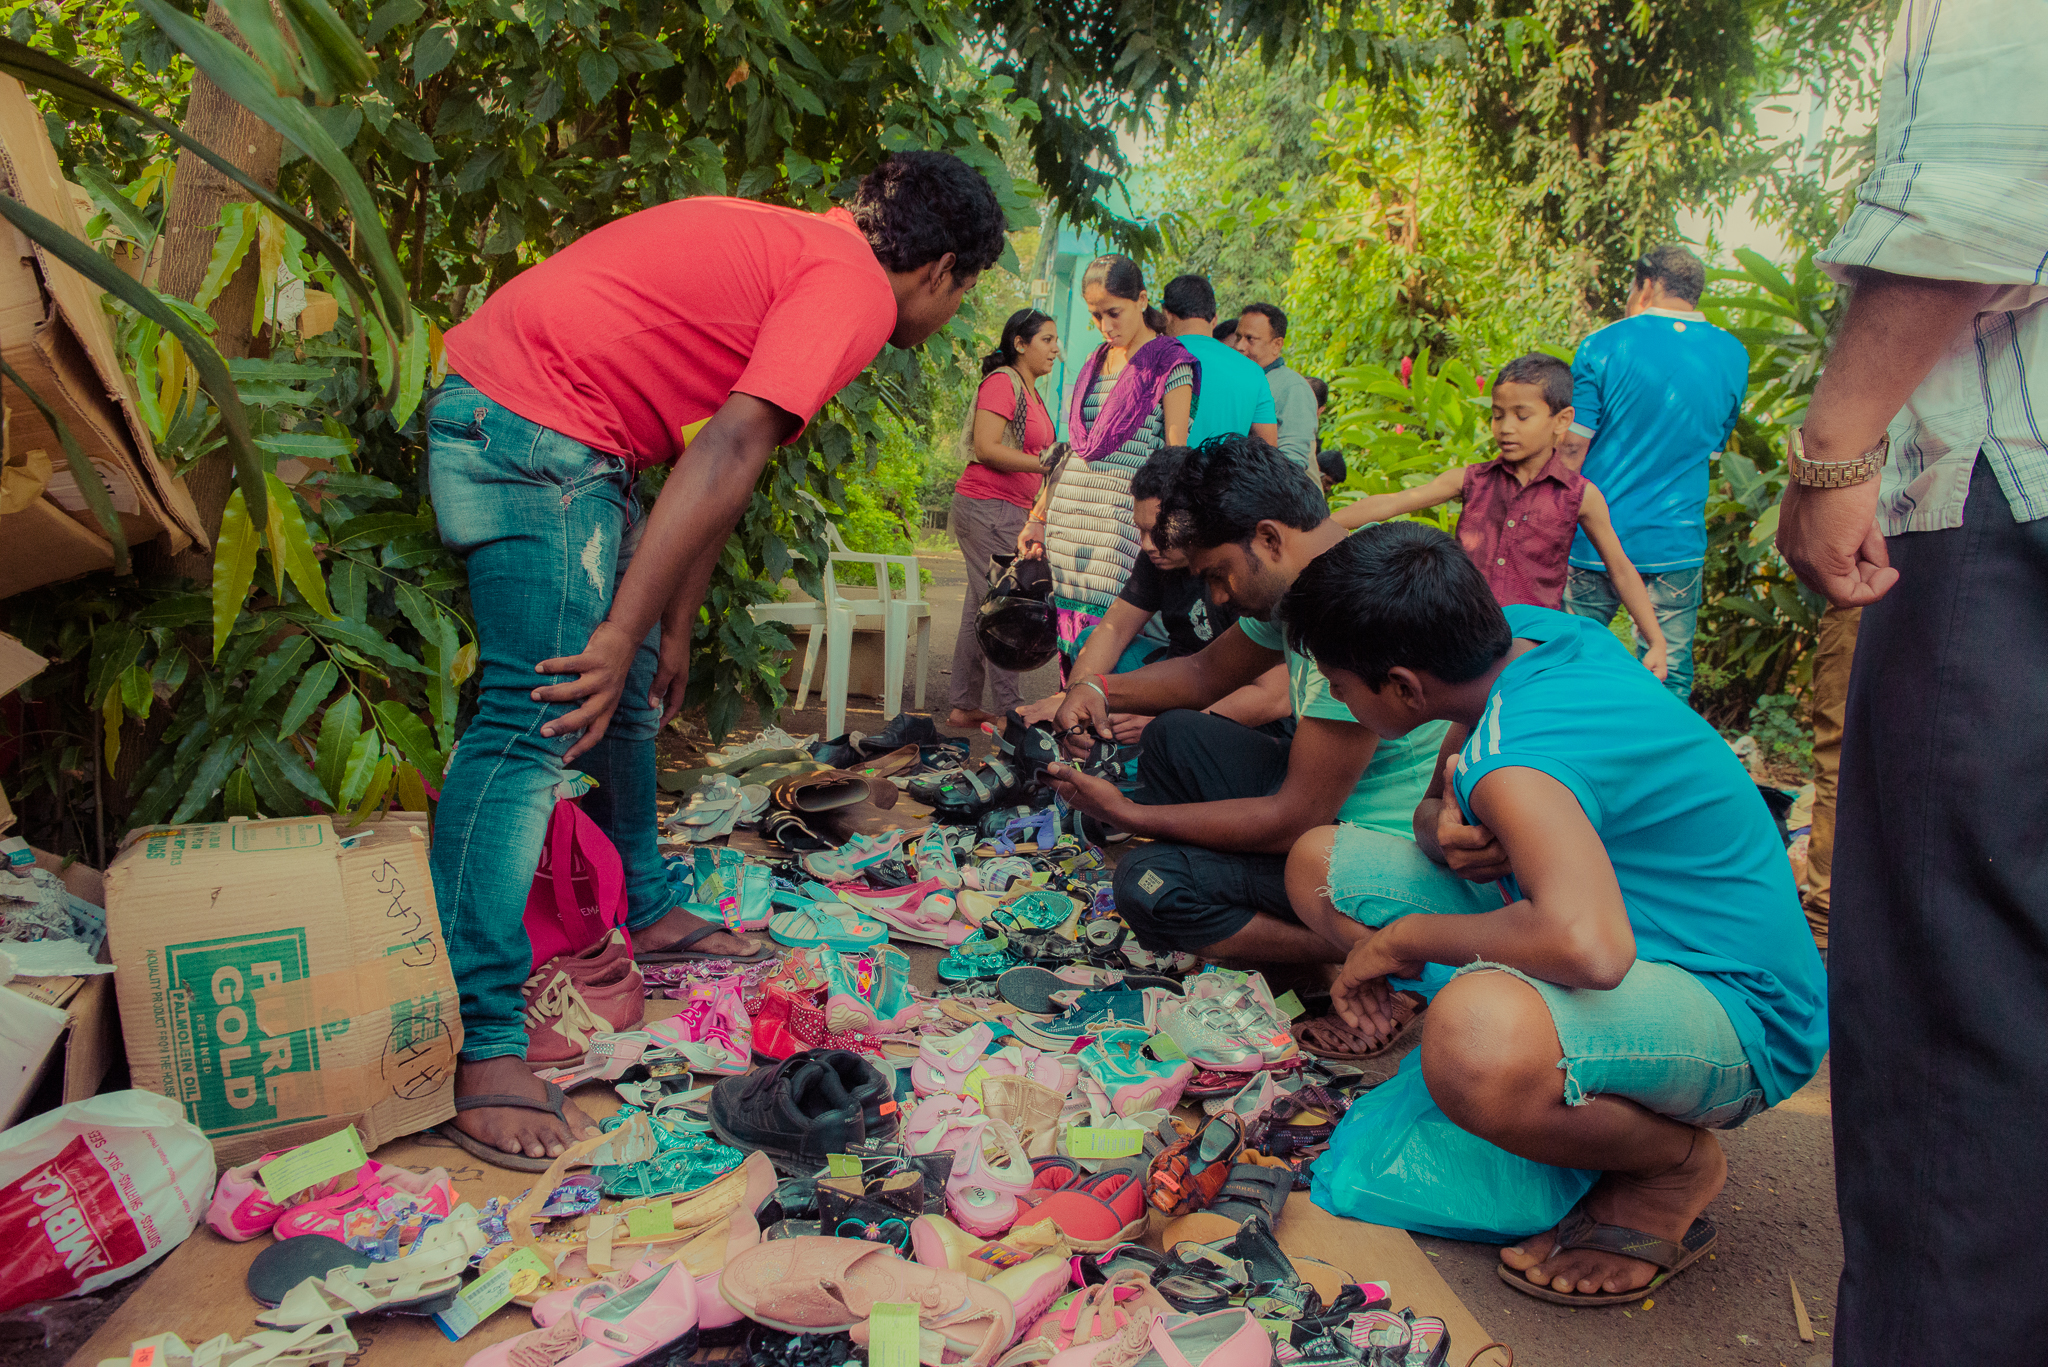 Nijugrapher-Bookworm_Jumble_Sale_2015-5-Nijugrapher-Bookworm-Panjim_Jumble_2015 - 22 - DSC_5471